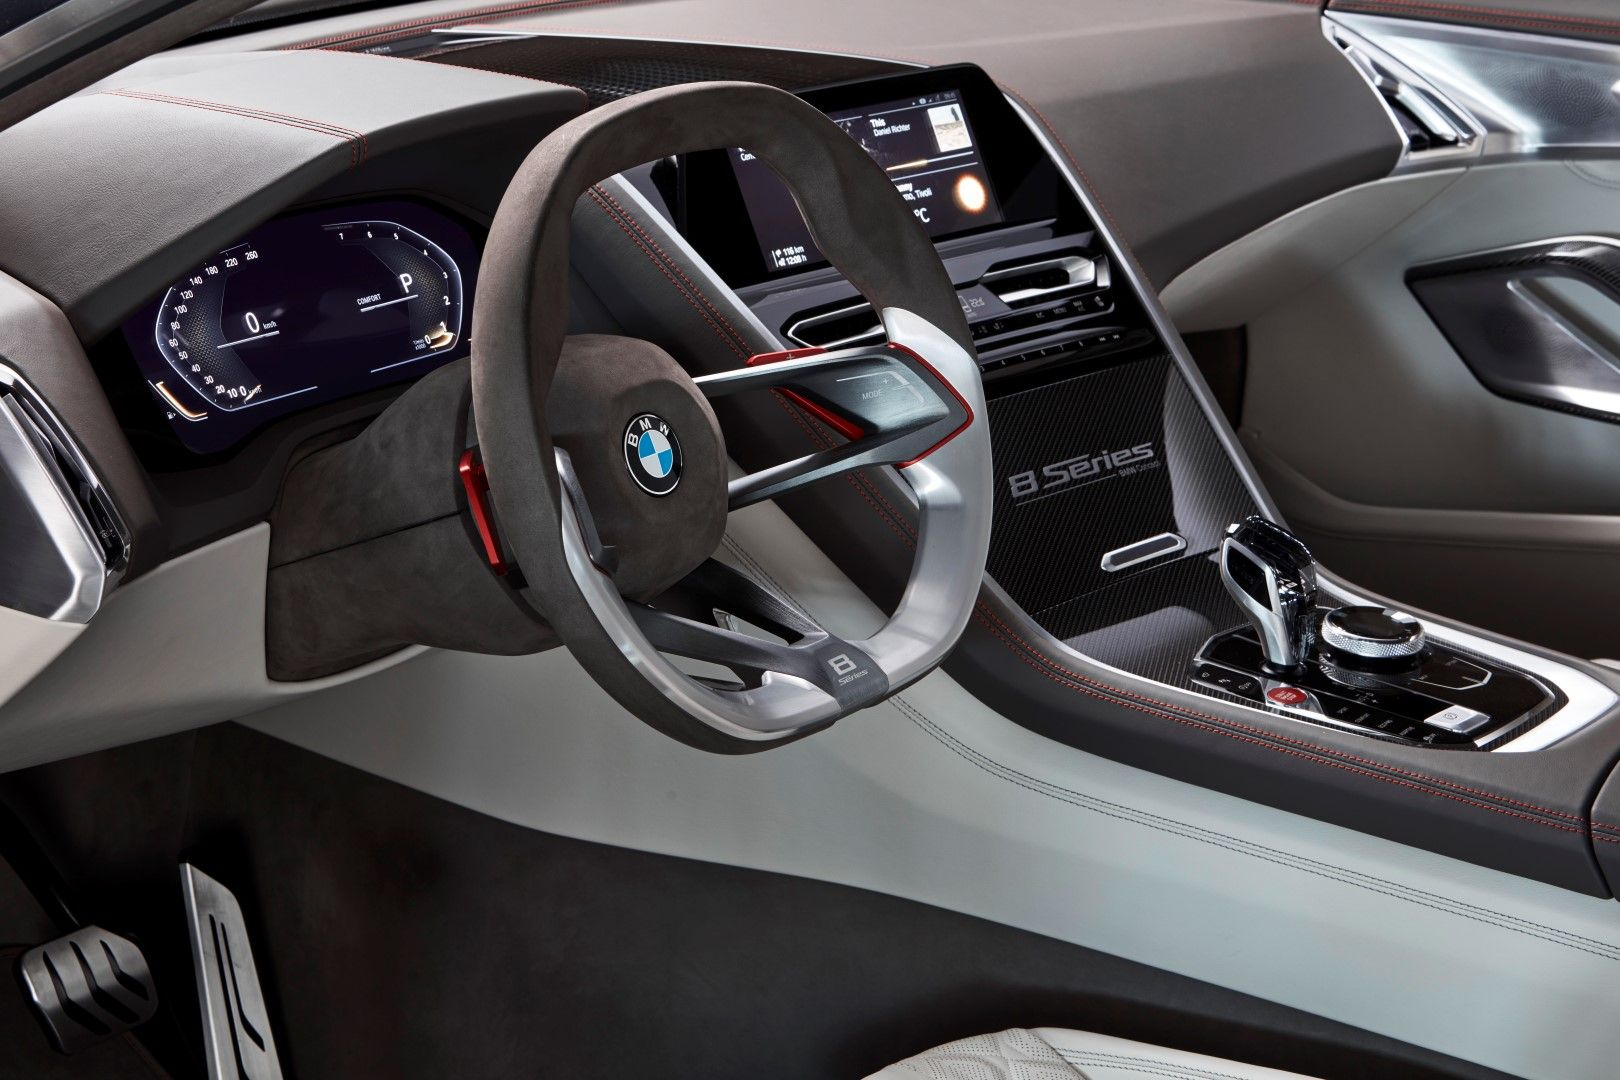 2017 Bmw Concept 8 Series A Concept For The 2018 Bmw M8 Series